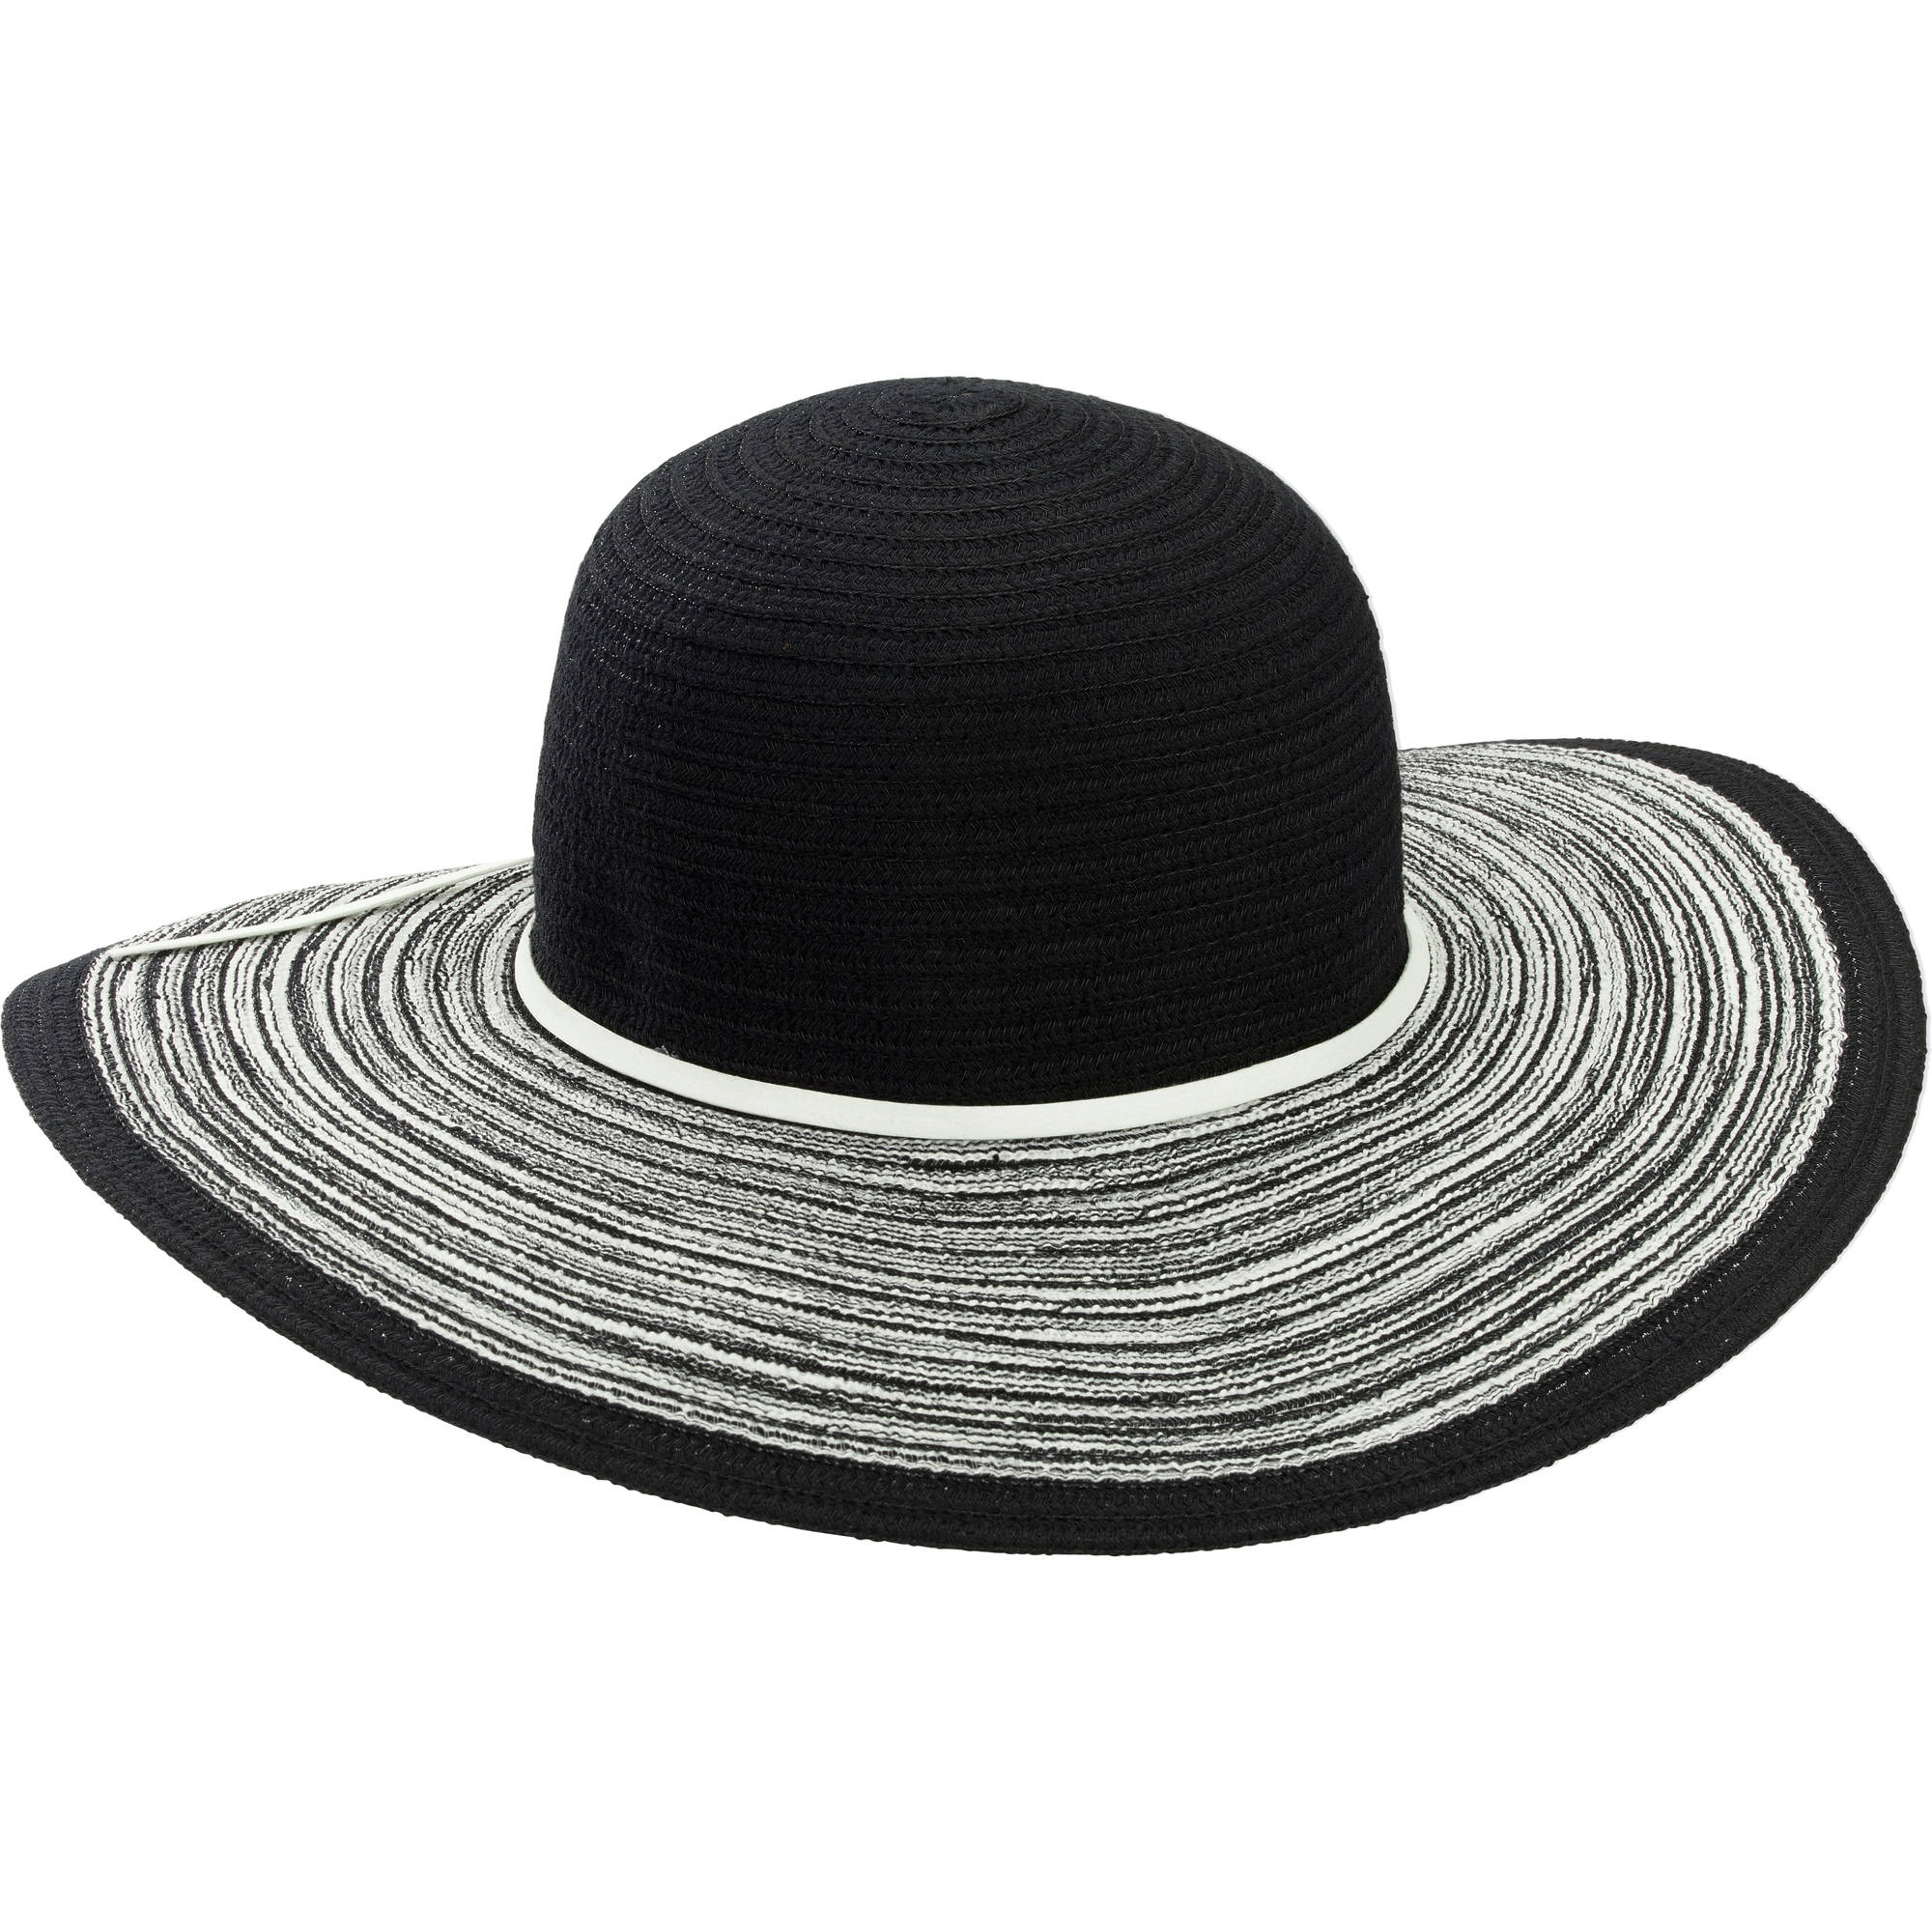 Women's Floppy Hat With Mixed Brim Details